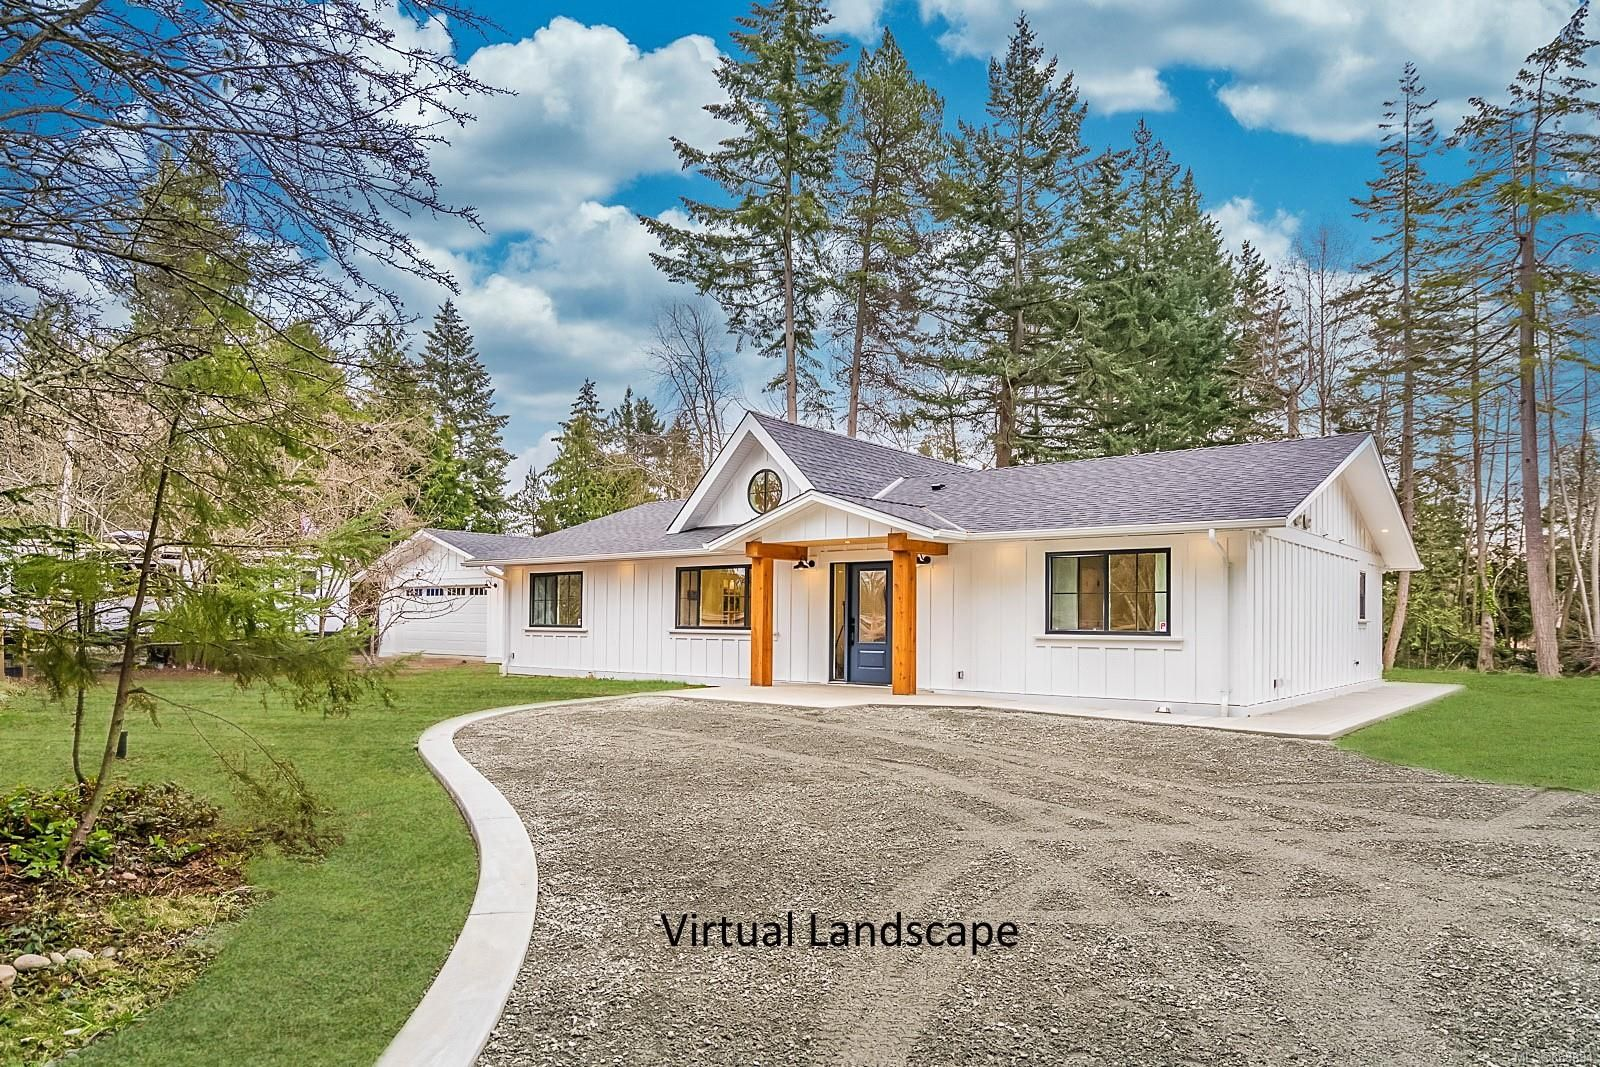 Main Photo: 724 Sanderson Rd in : PQ Parksville House for sale (Parksville/Qualicum)  : MLS®# 869894